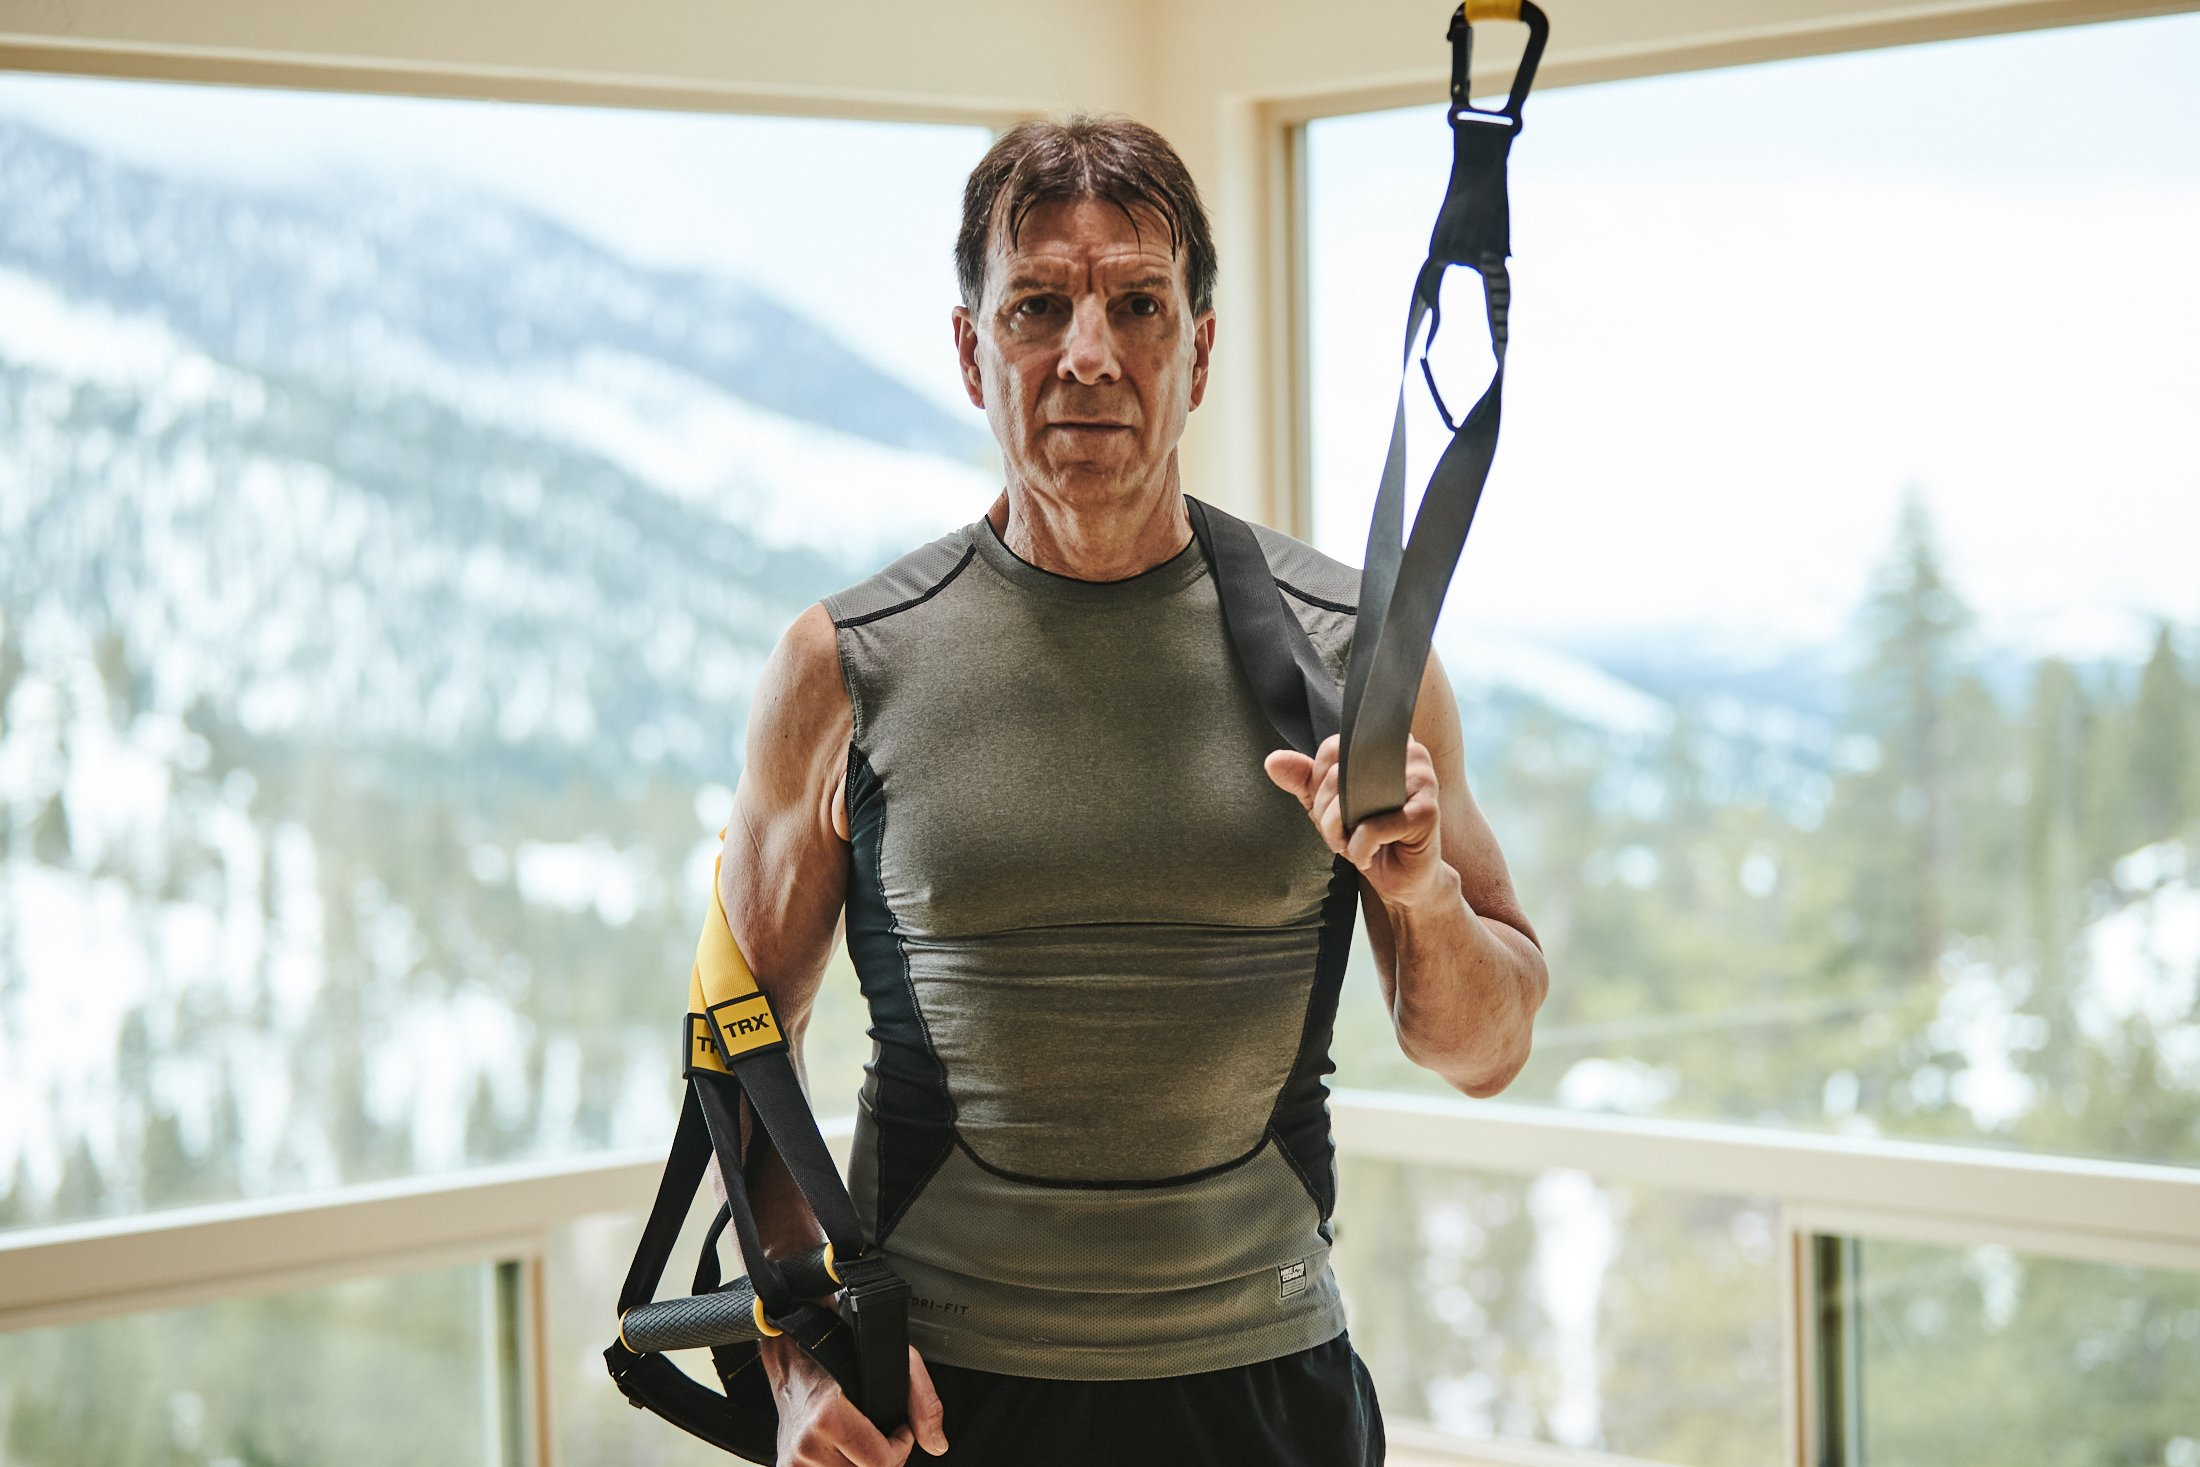 Walt Raineri, wearing a grey sleeveless shirt and black shorts, holds his TRX Suspension Trainer. He's in front of a window, with snow-capped mountains outside.